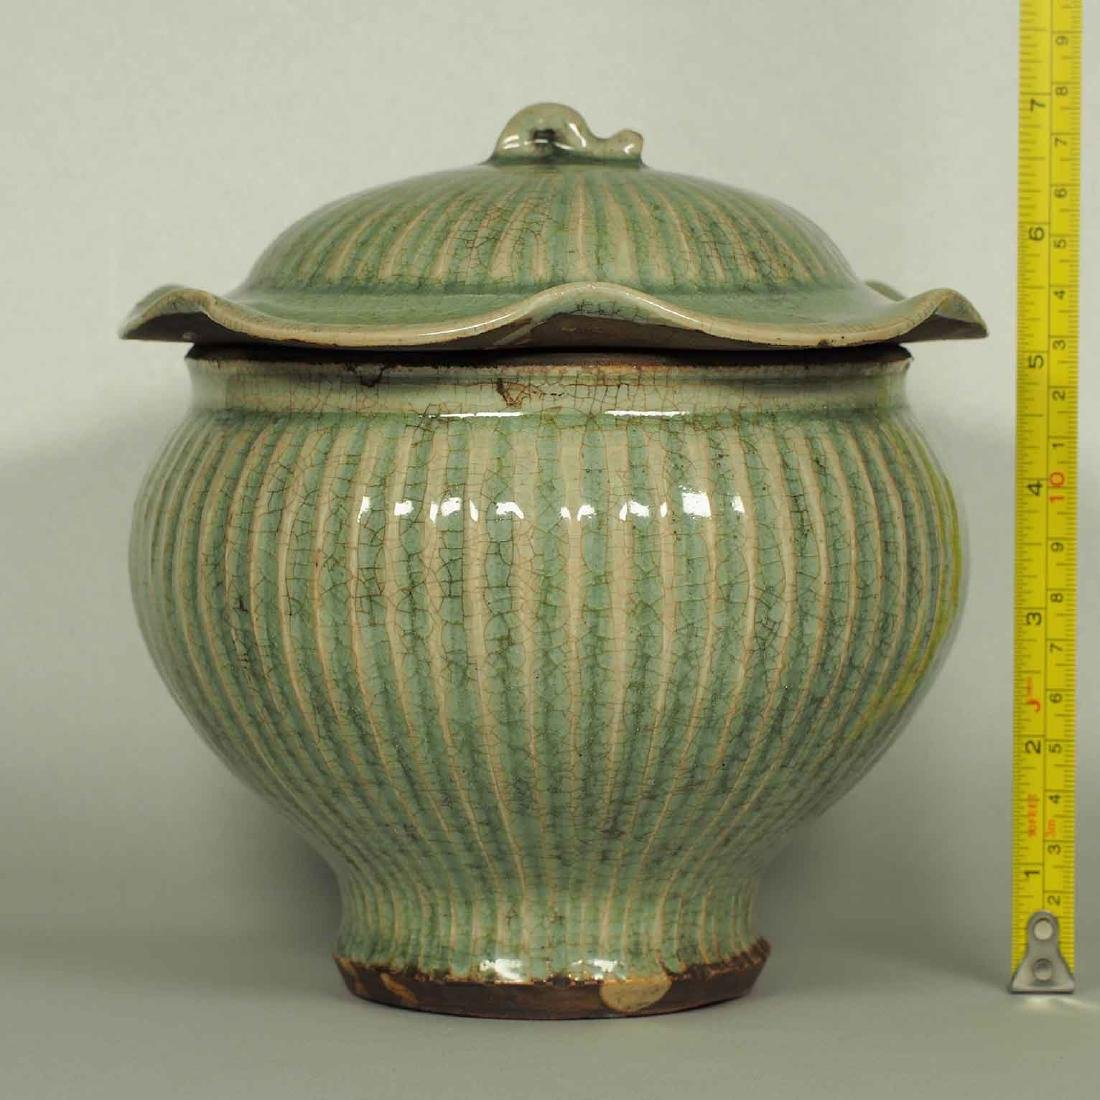 Longquan Fluted Jar with Lid, late Southern Song-early - 10